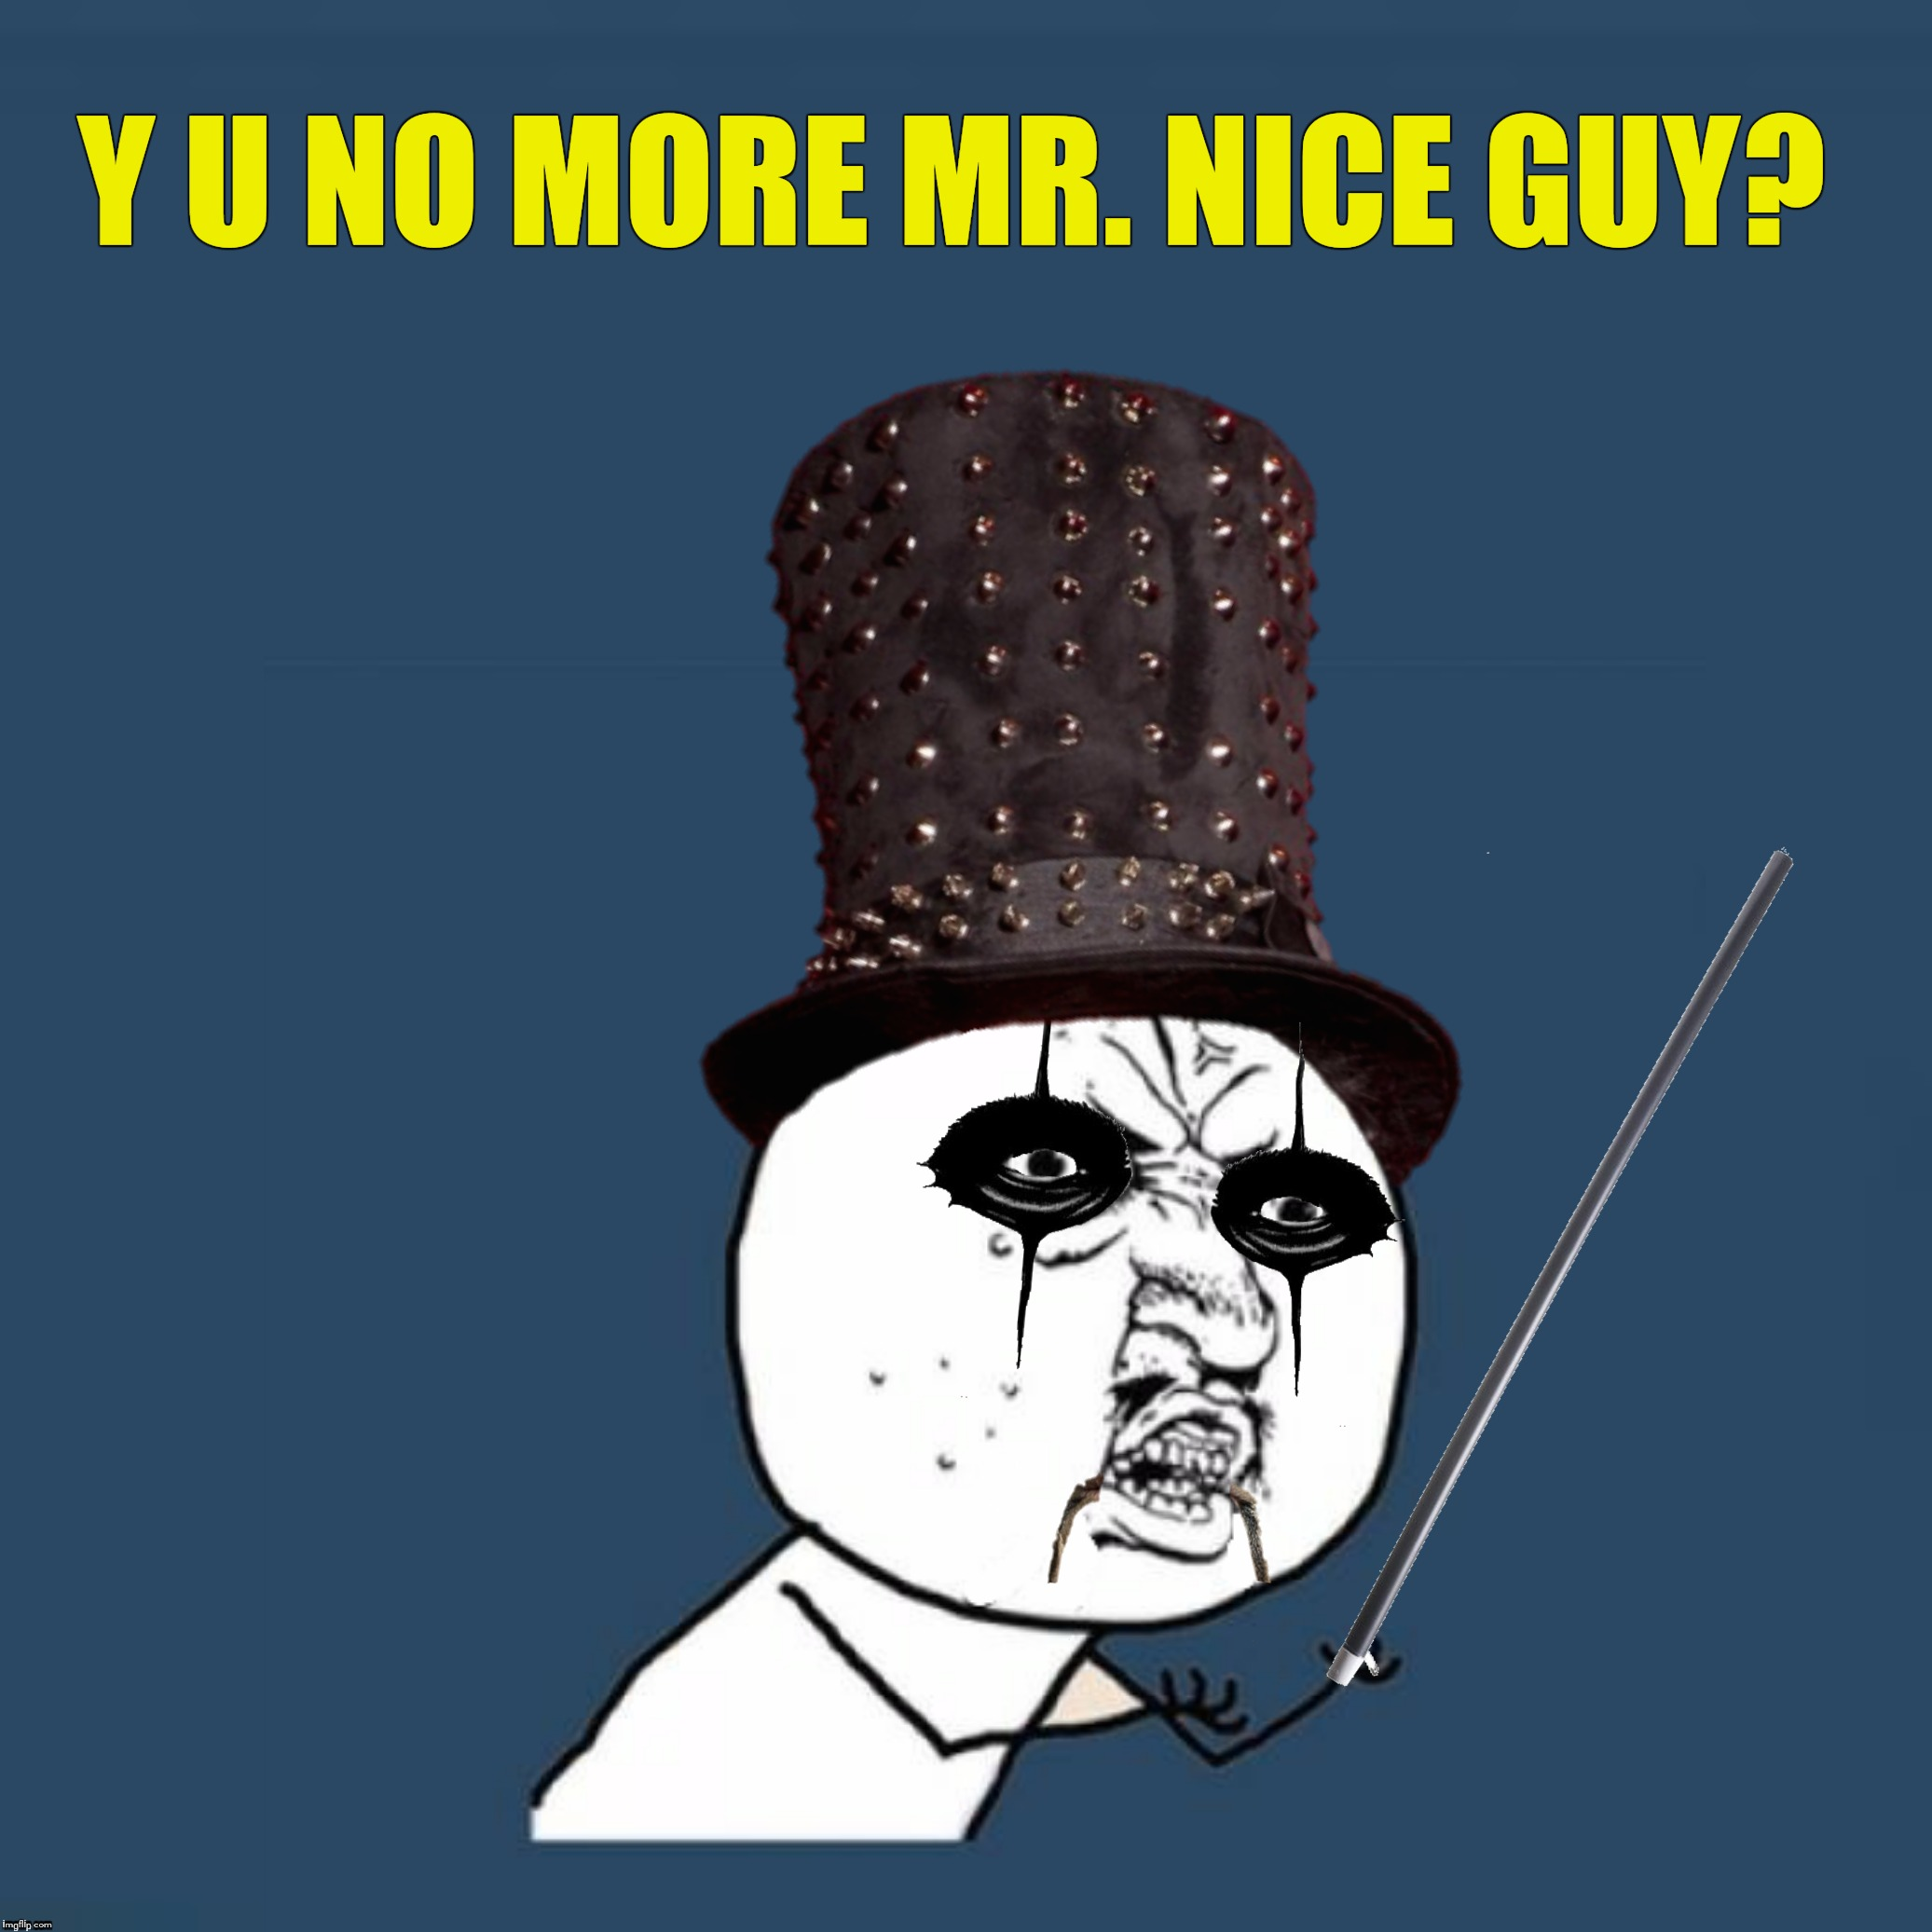 Bad Photoshop Sunday presents:  Y U no more Mr. Clean? |  Y U NO MORE MR. NICE GUY? | image tagged in bad photoshop sunday,alice cooper,y u no guy,no more mr nice guy | made w/ Imgflip meme maker